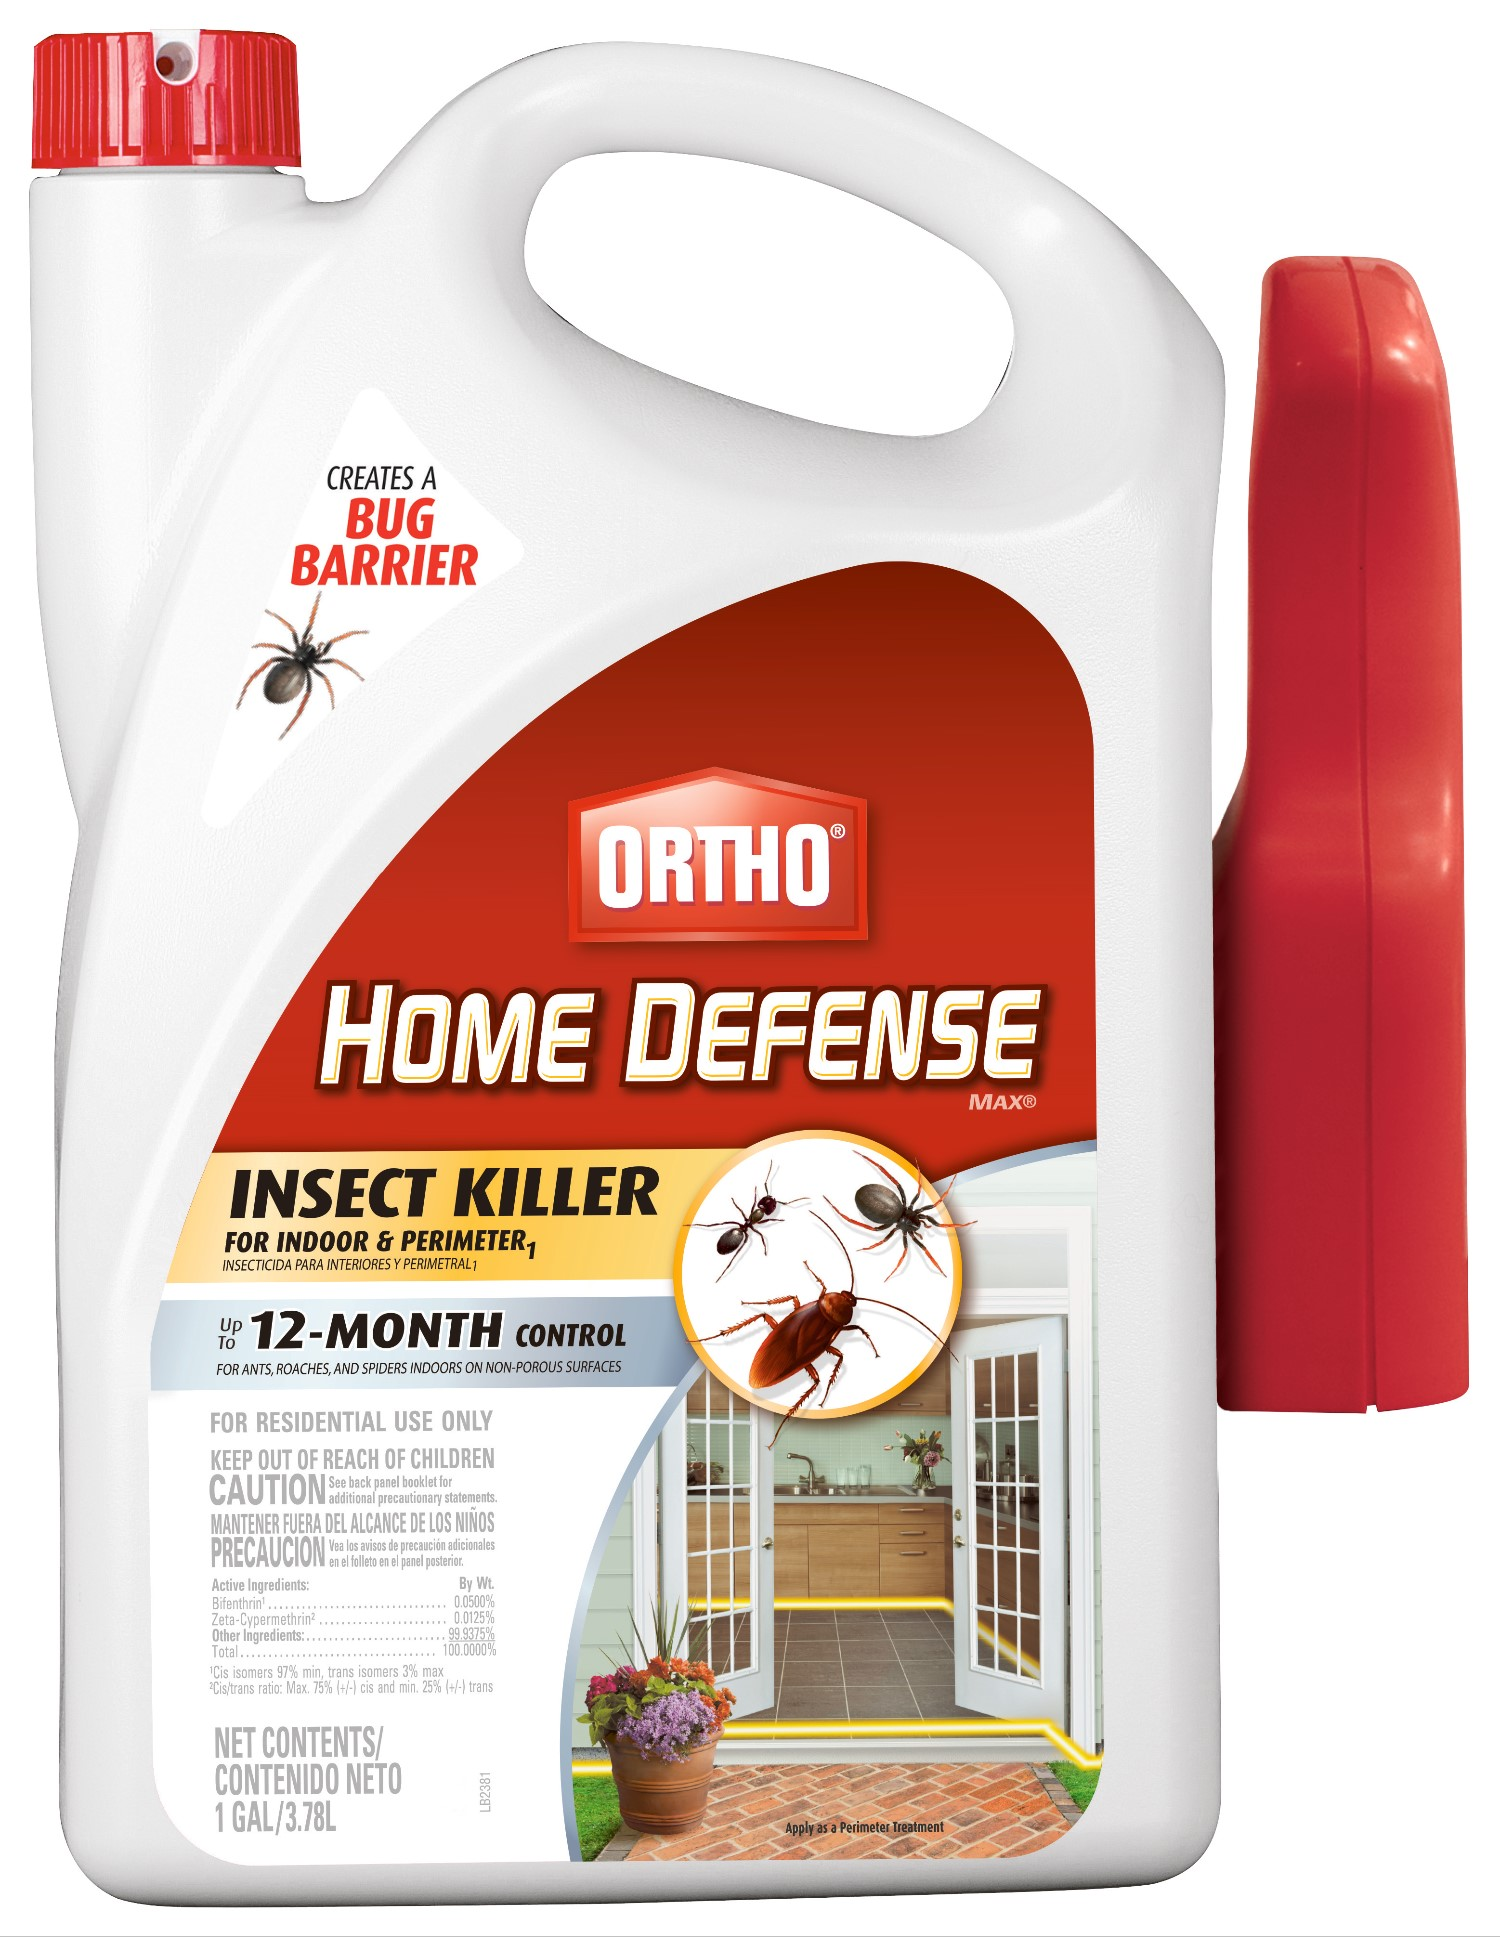 Ortho Home Defense Max Insect Killer For Indoor Perimeter1 Ready To Use Trigger 1 Gal Walmart Com Walmart Com